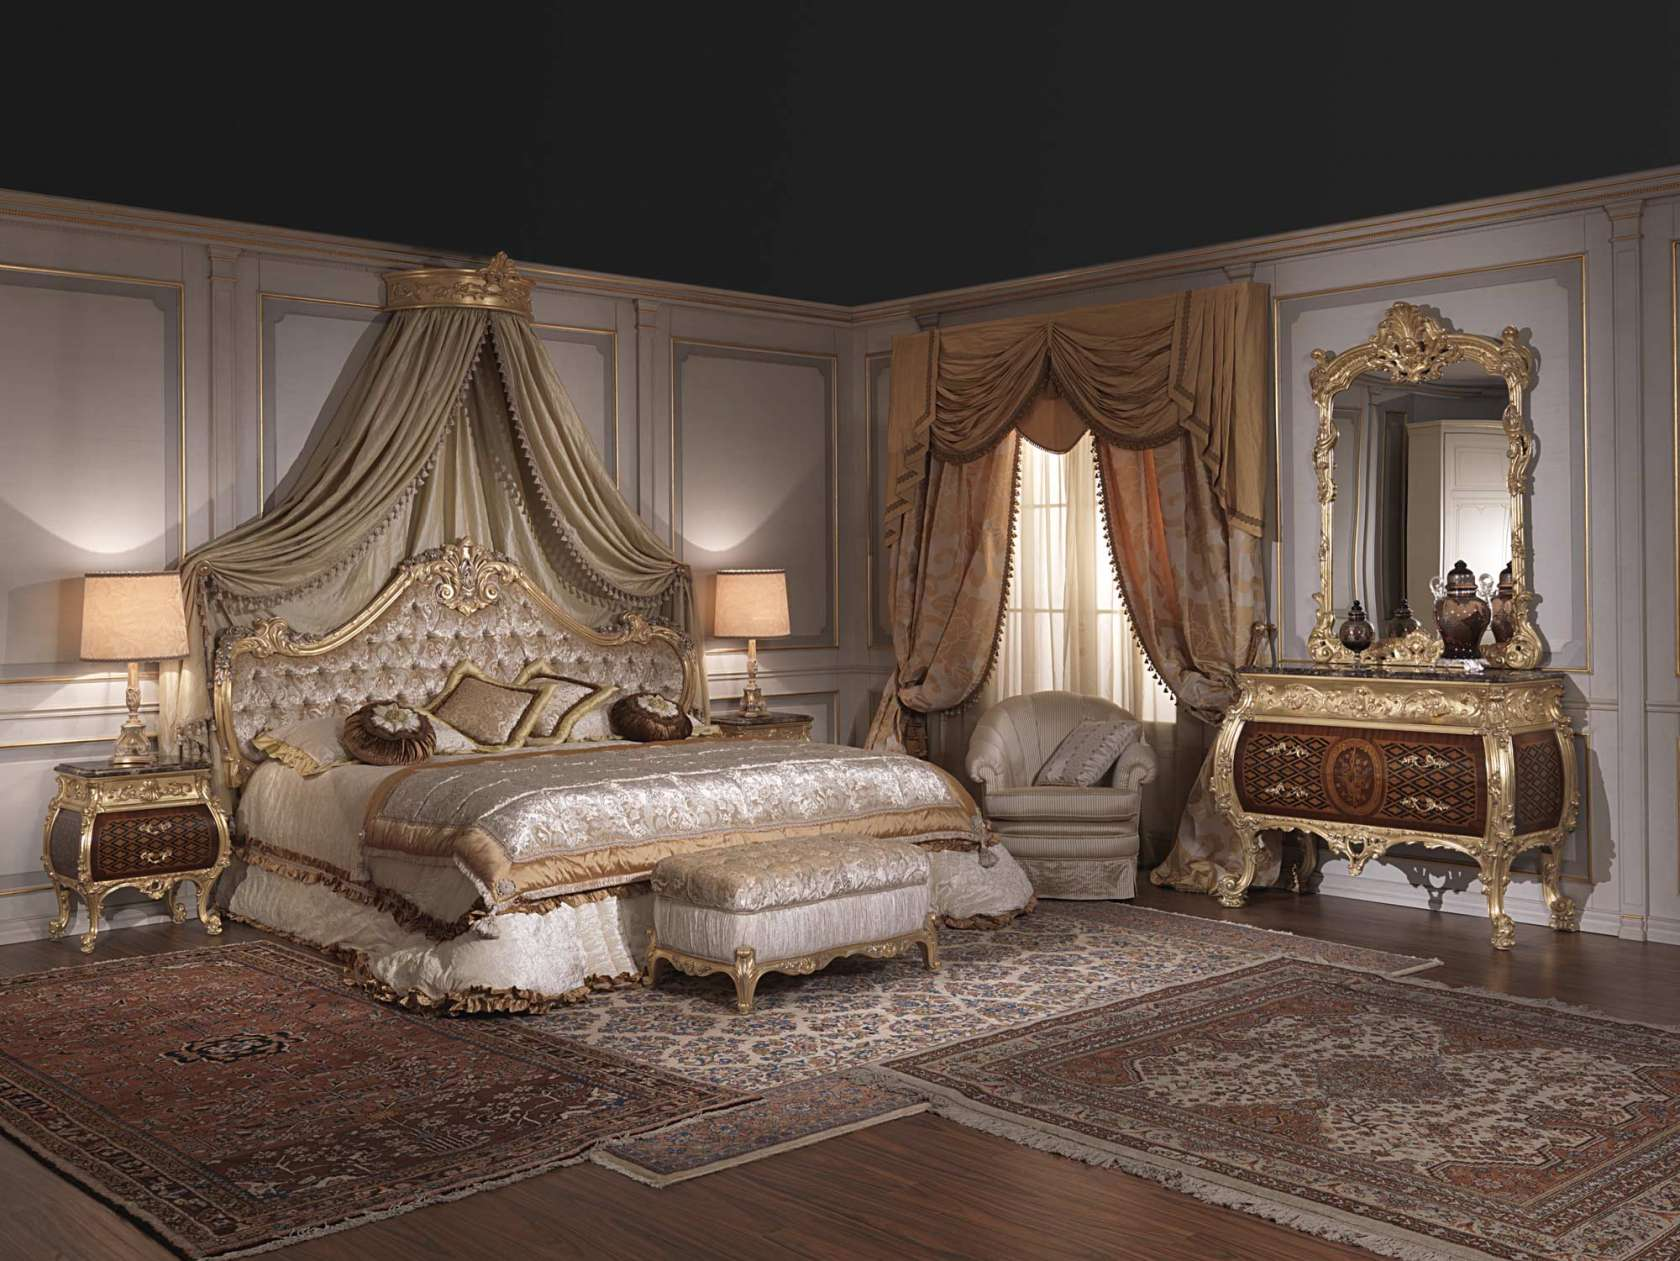 Louis Bedroom Furniture Furniture For Luxury Bedroom Emperador Gold Art 397 931